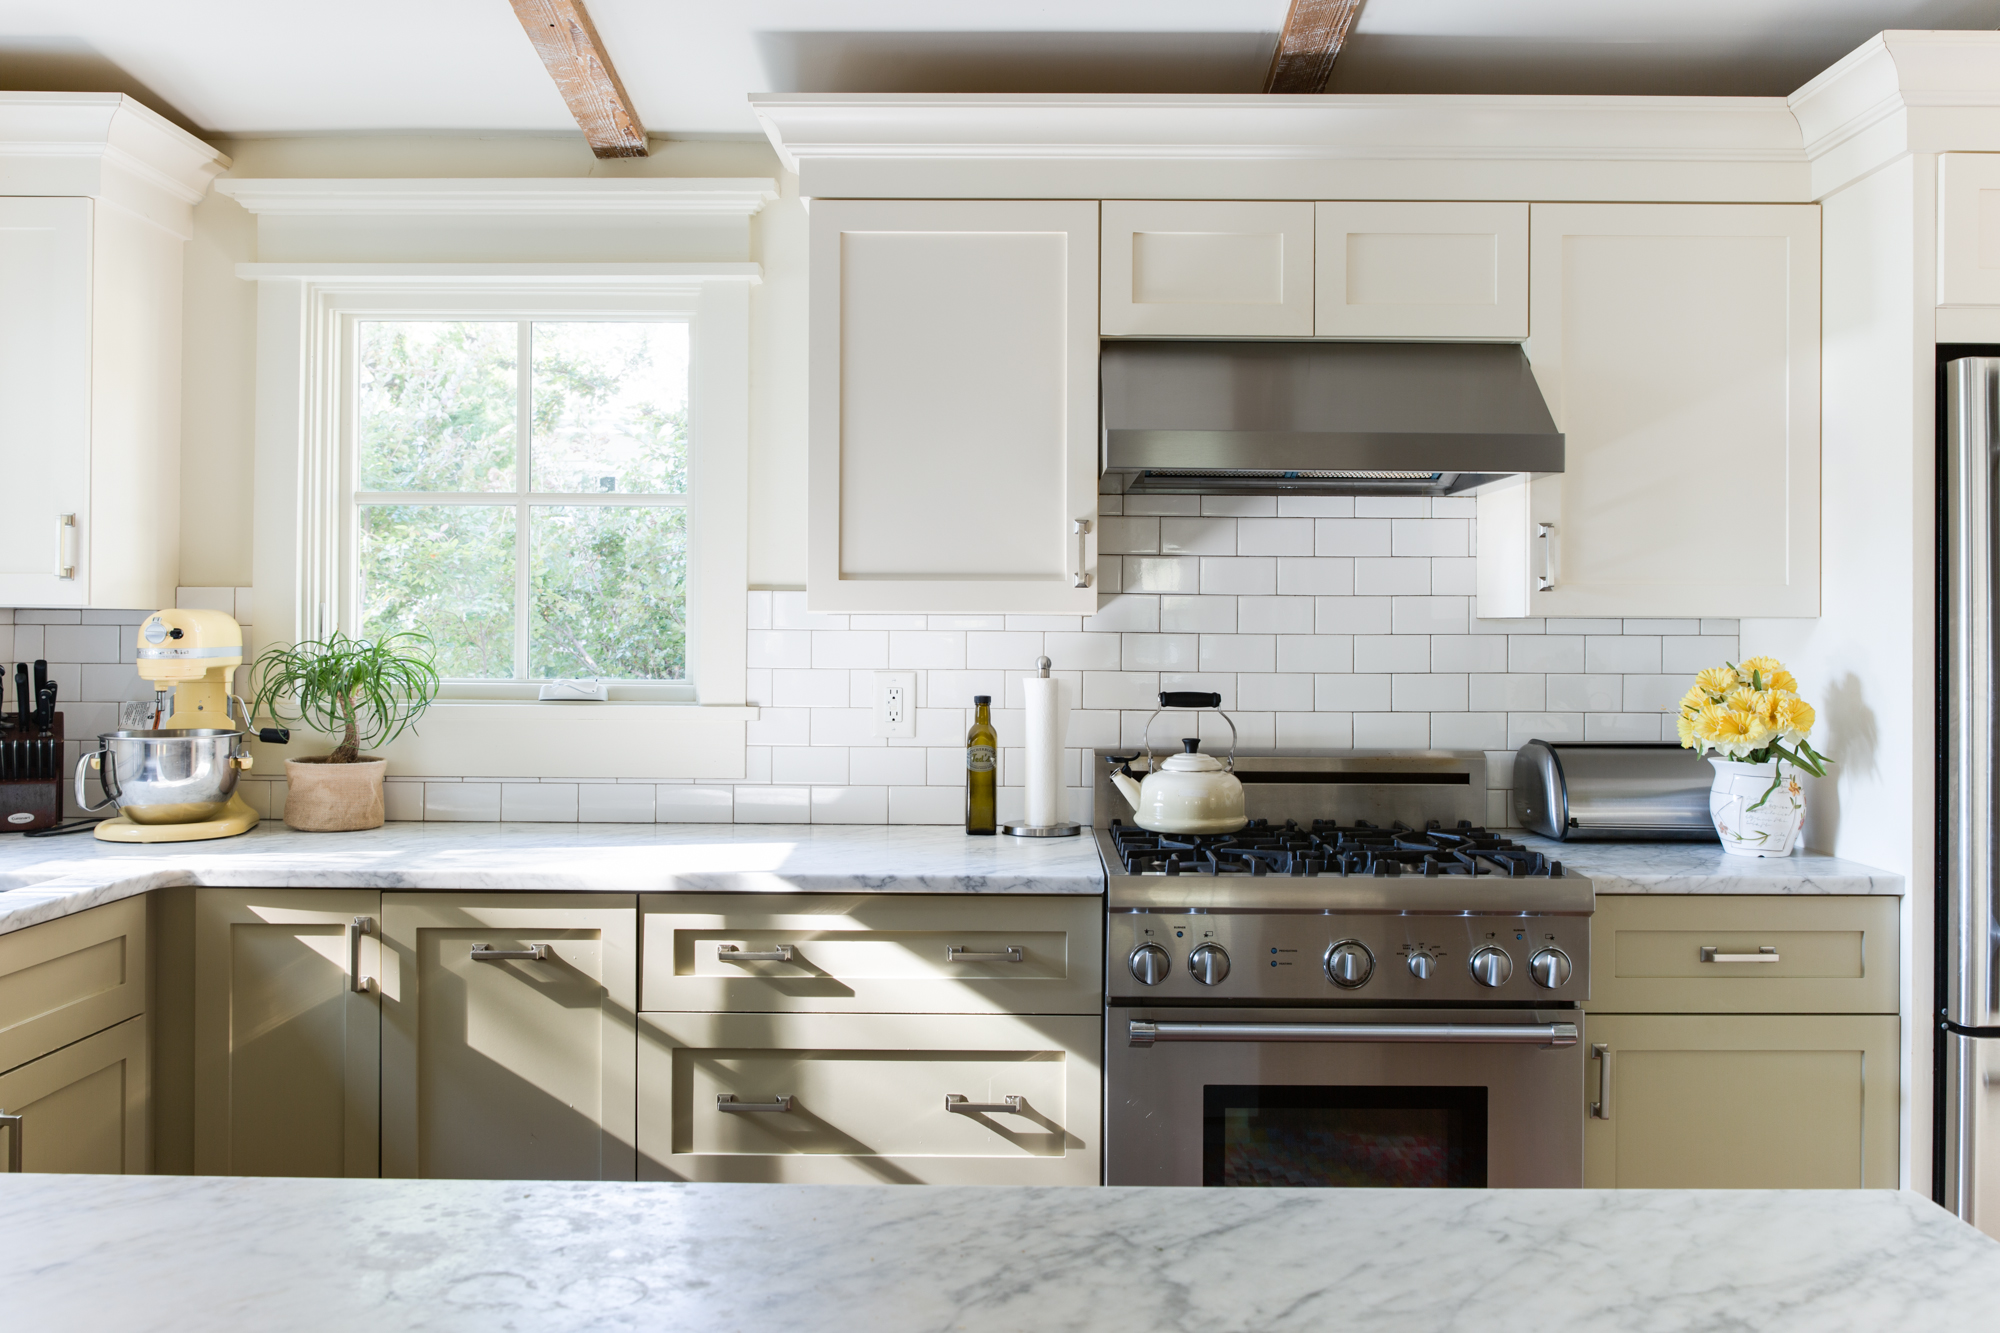 Best Cabinet Doors for Modern Farmhouse Style Kitchens ...